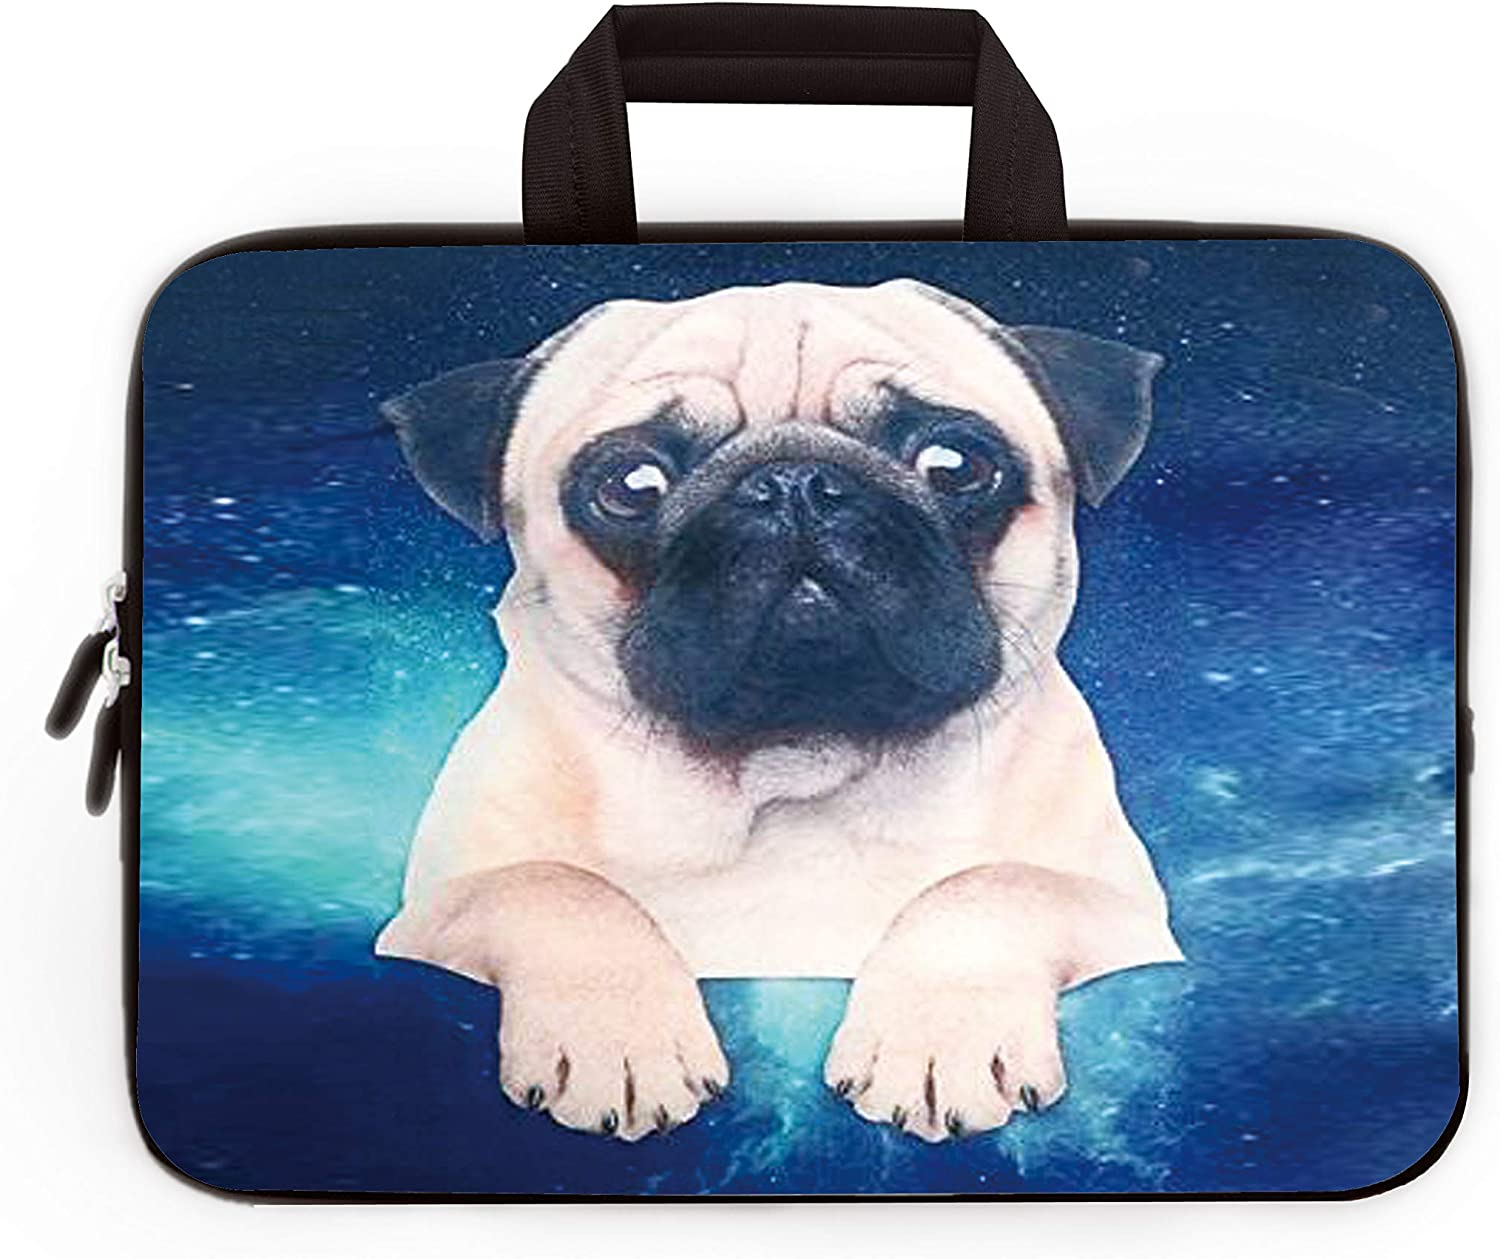 "11"" 11.6"" 12"" 12.1"" 12.5"" inch Laptop Carrying Bag Chromebook Case Notebook Ultrabook Bag Tablet Cover Neoprene Sleeve Fit Apple MacBook Air Samsung Google Acer HP DELL Lenovo Asus (Starry Sky Pug)"